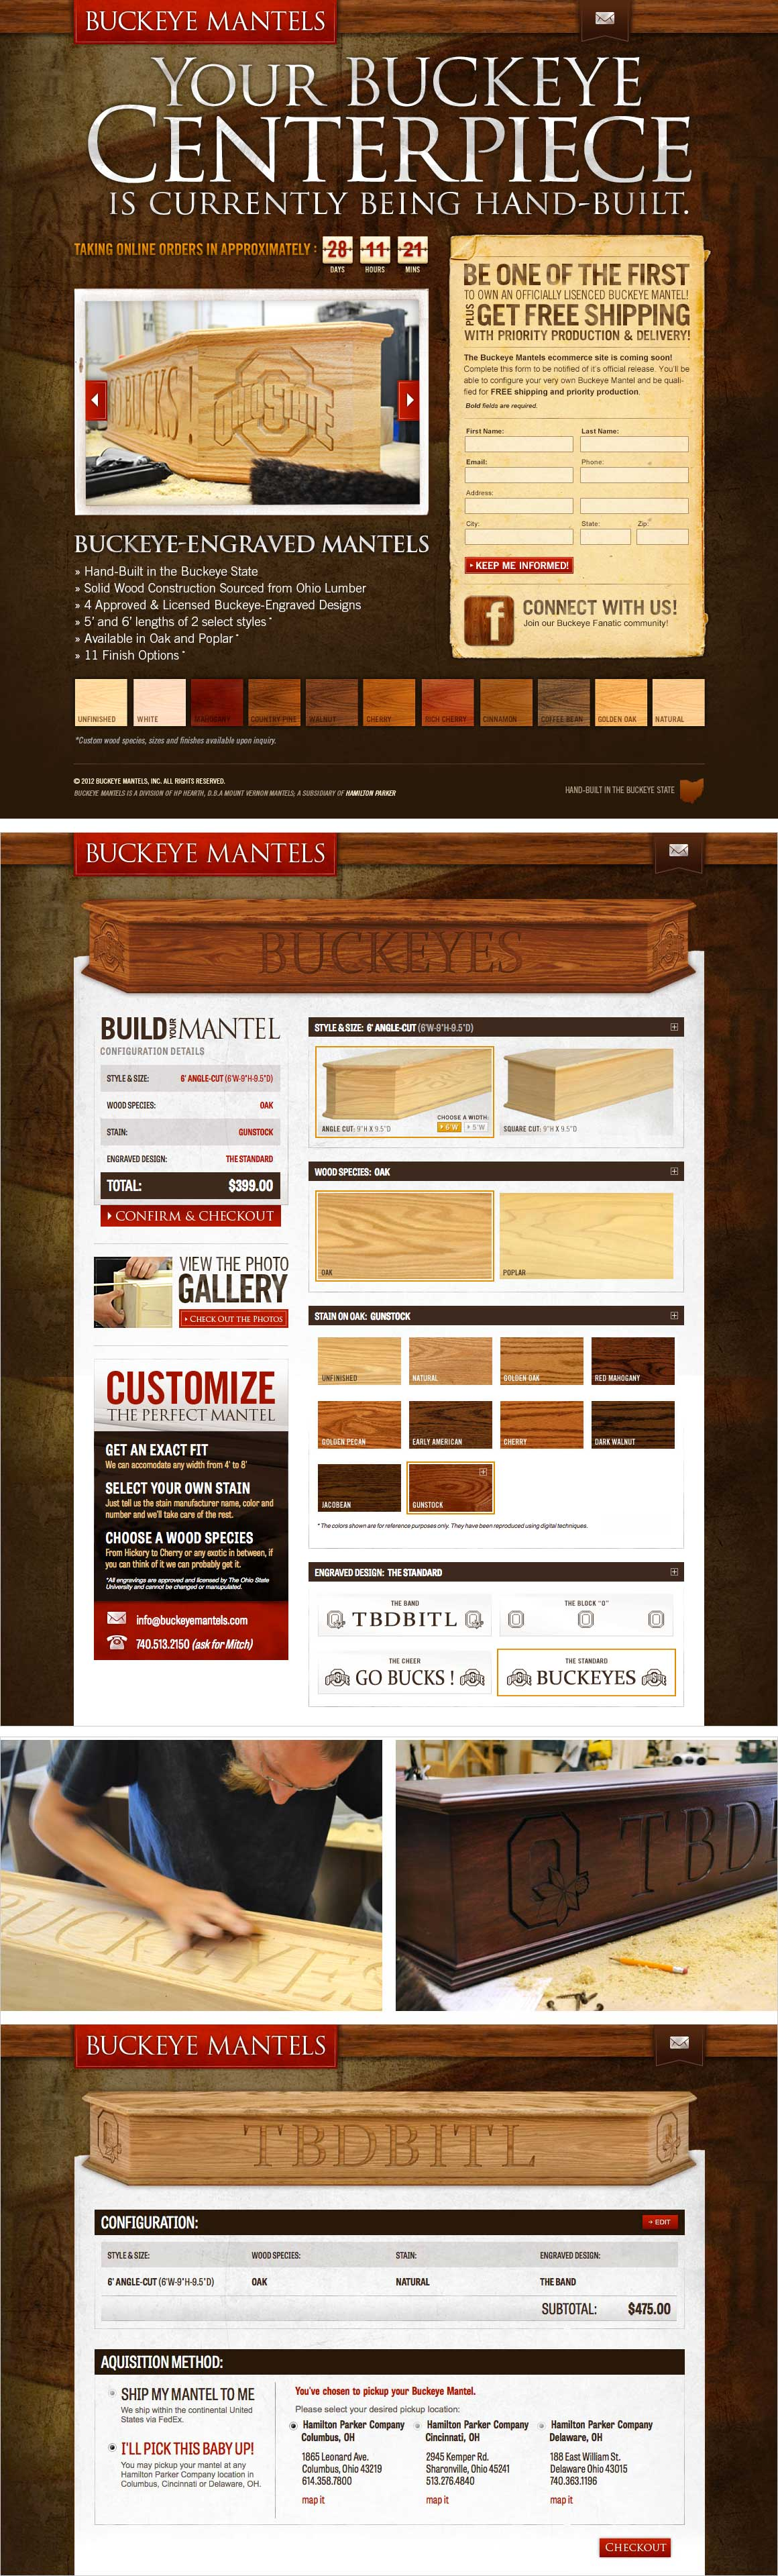 Buckeye Mantels Website Design